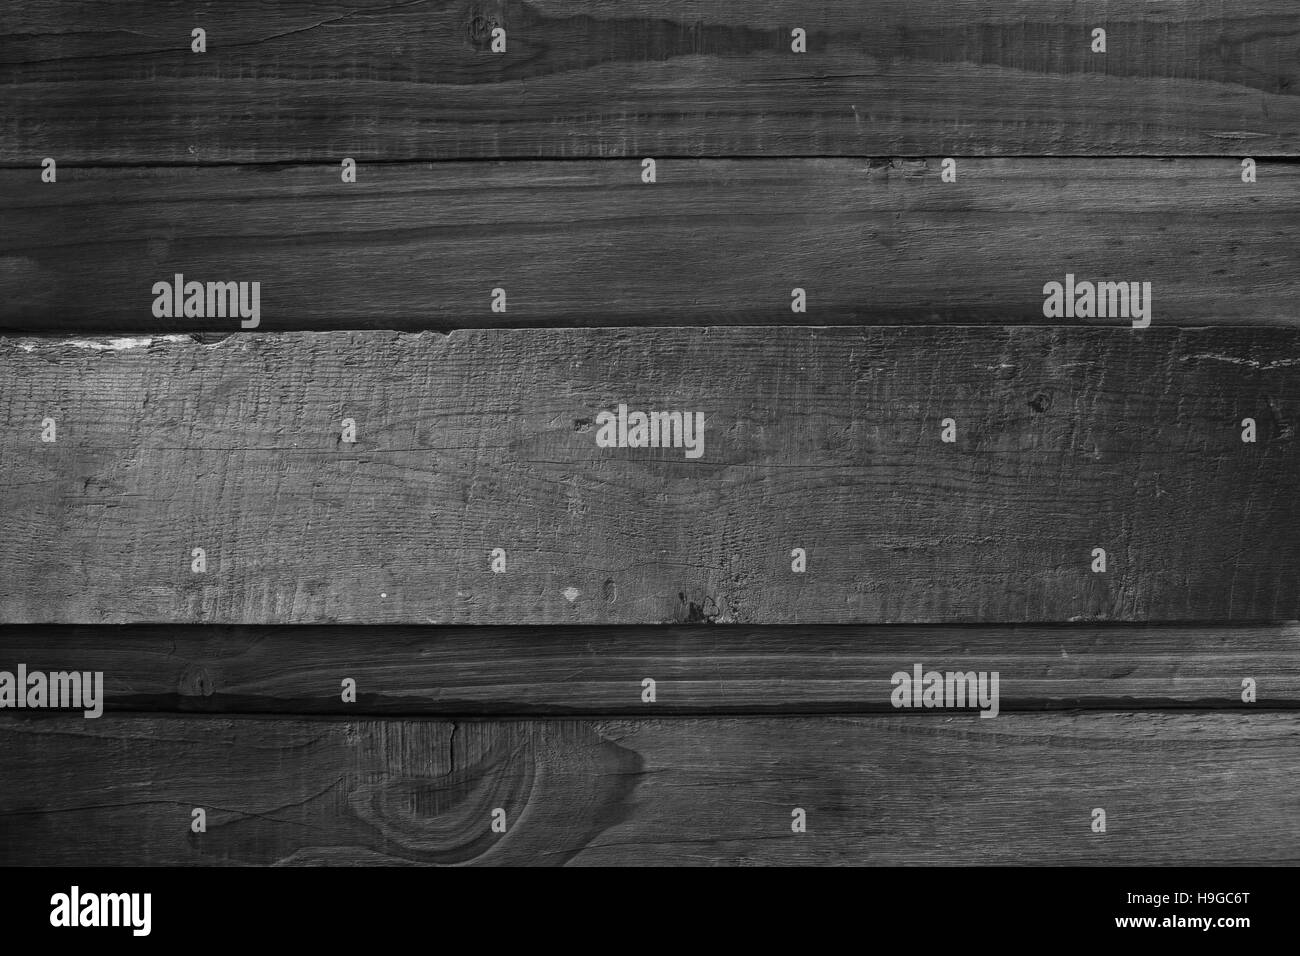 Composite image of overhead of wooden planks - Stock Image